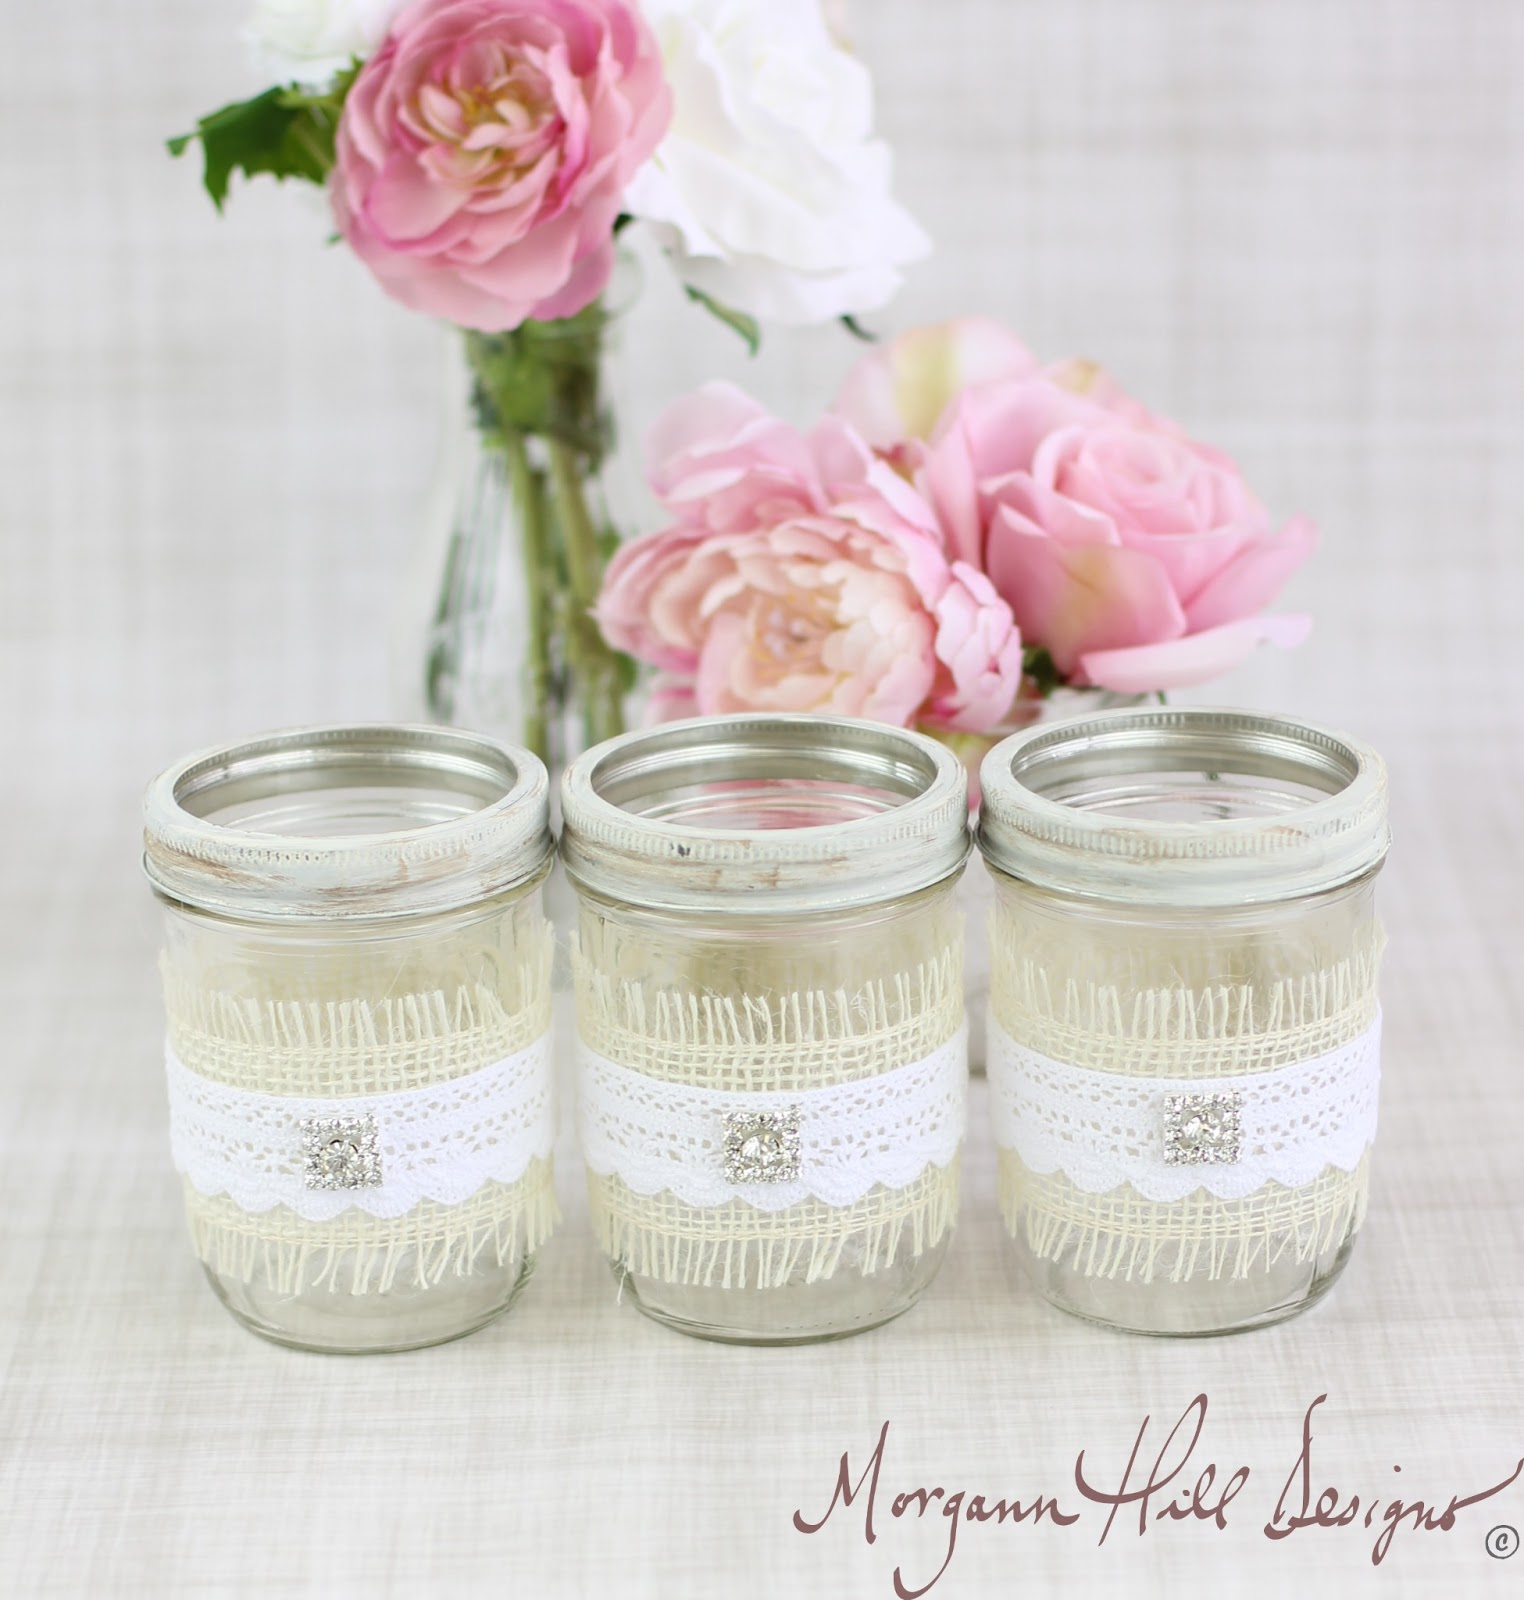 Country Wedding Mason Jars: Morgann Hill Designs: Mason Jar Wedding Centerpieces Vases